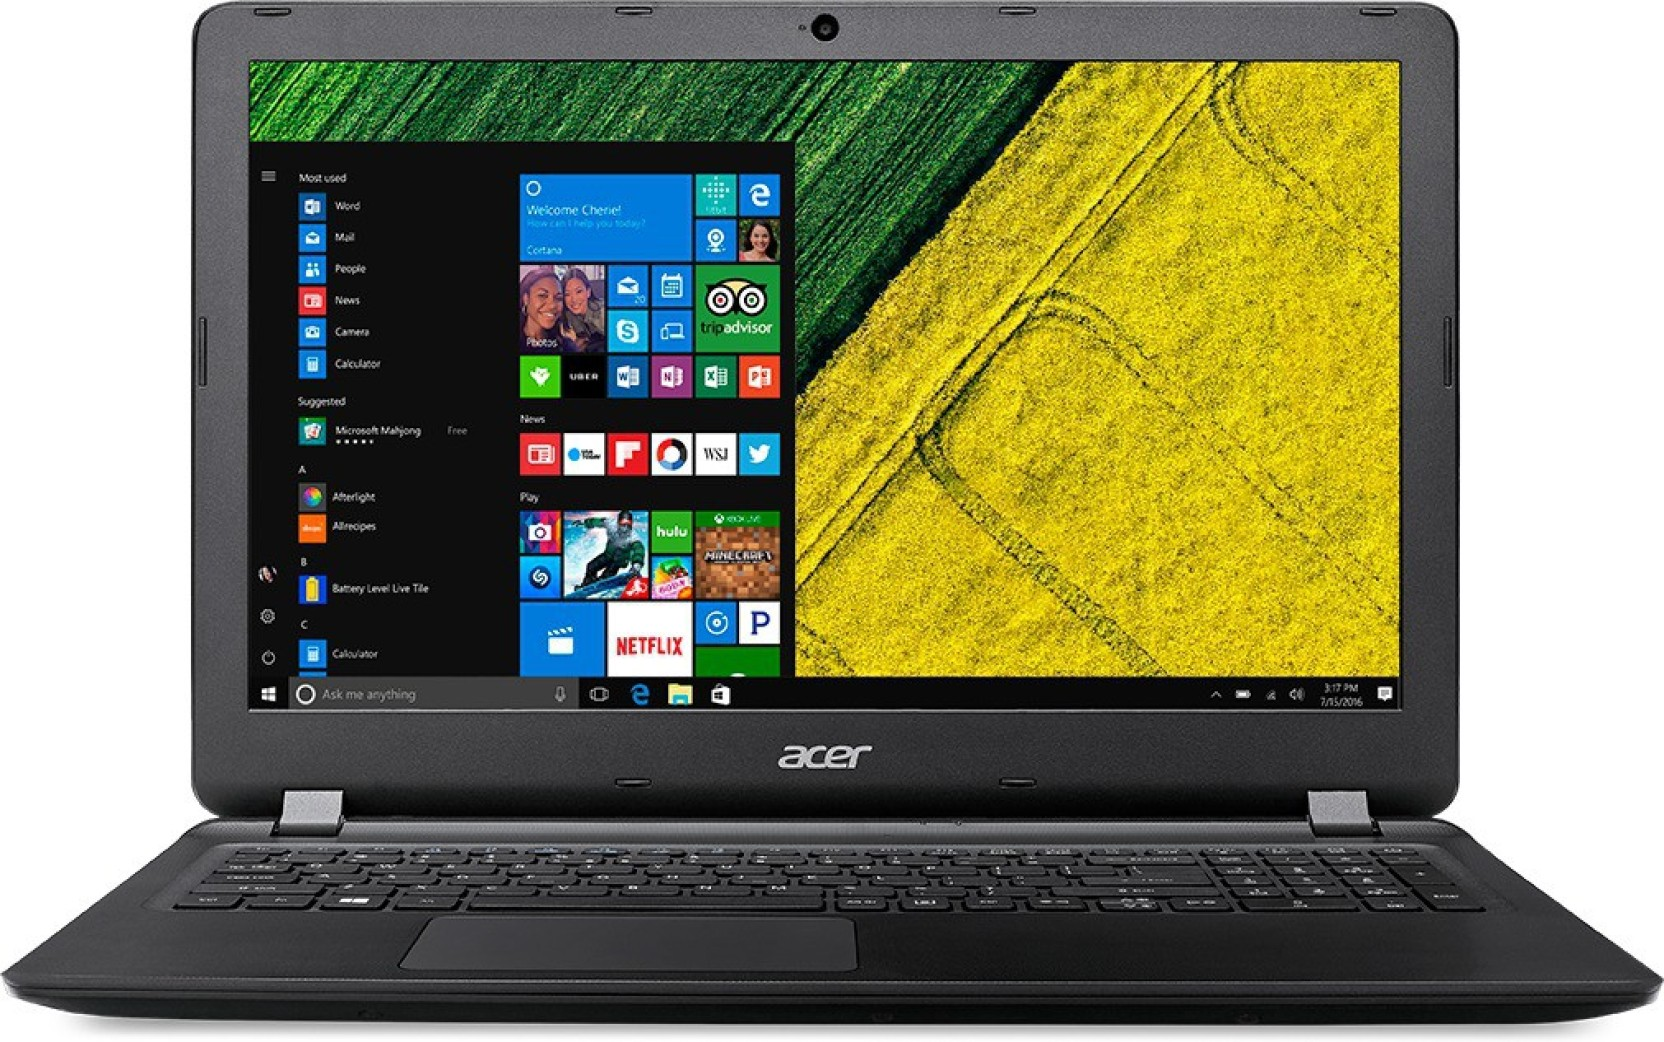 Acer ES 15 Core i3 6th Gen (4 GB/500 GB HDD/Linux)